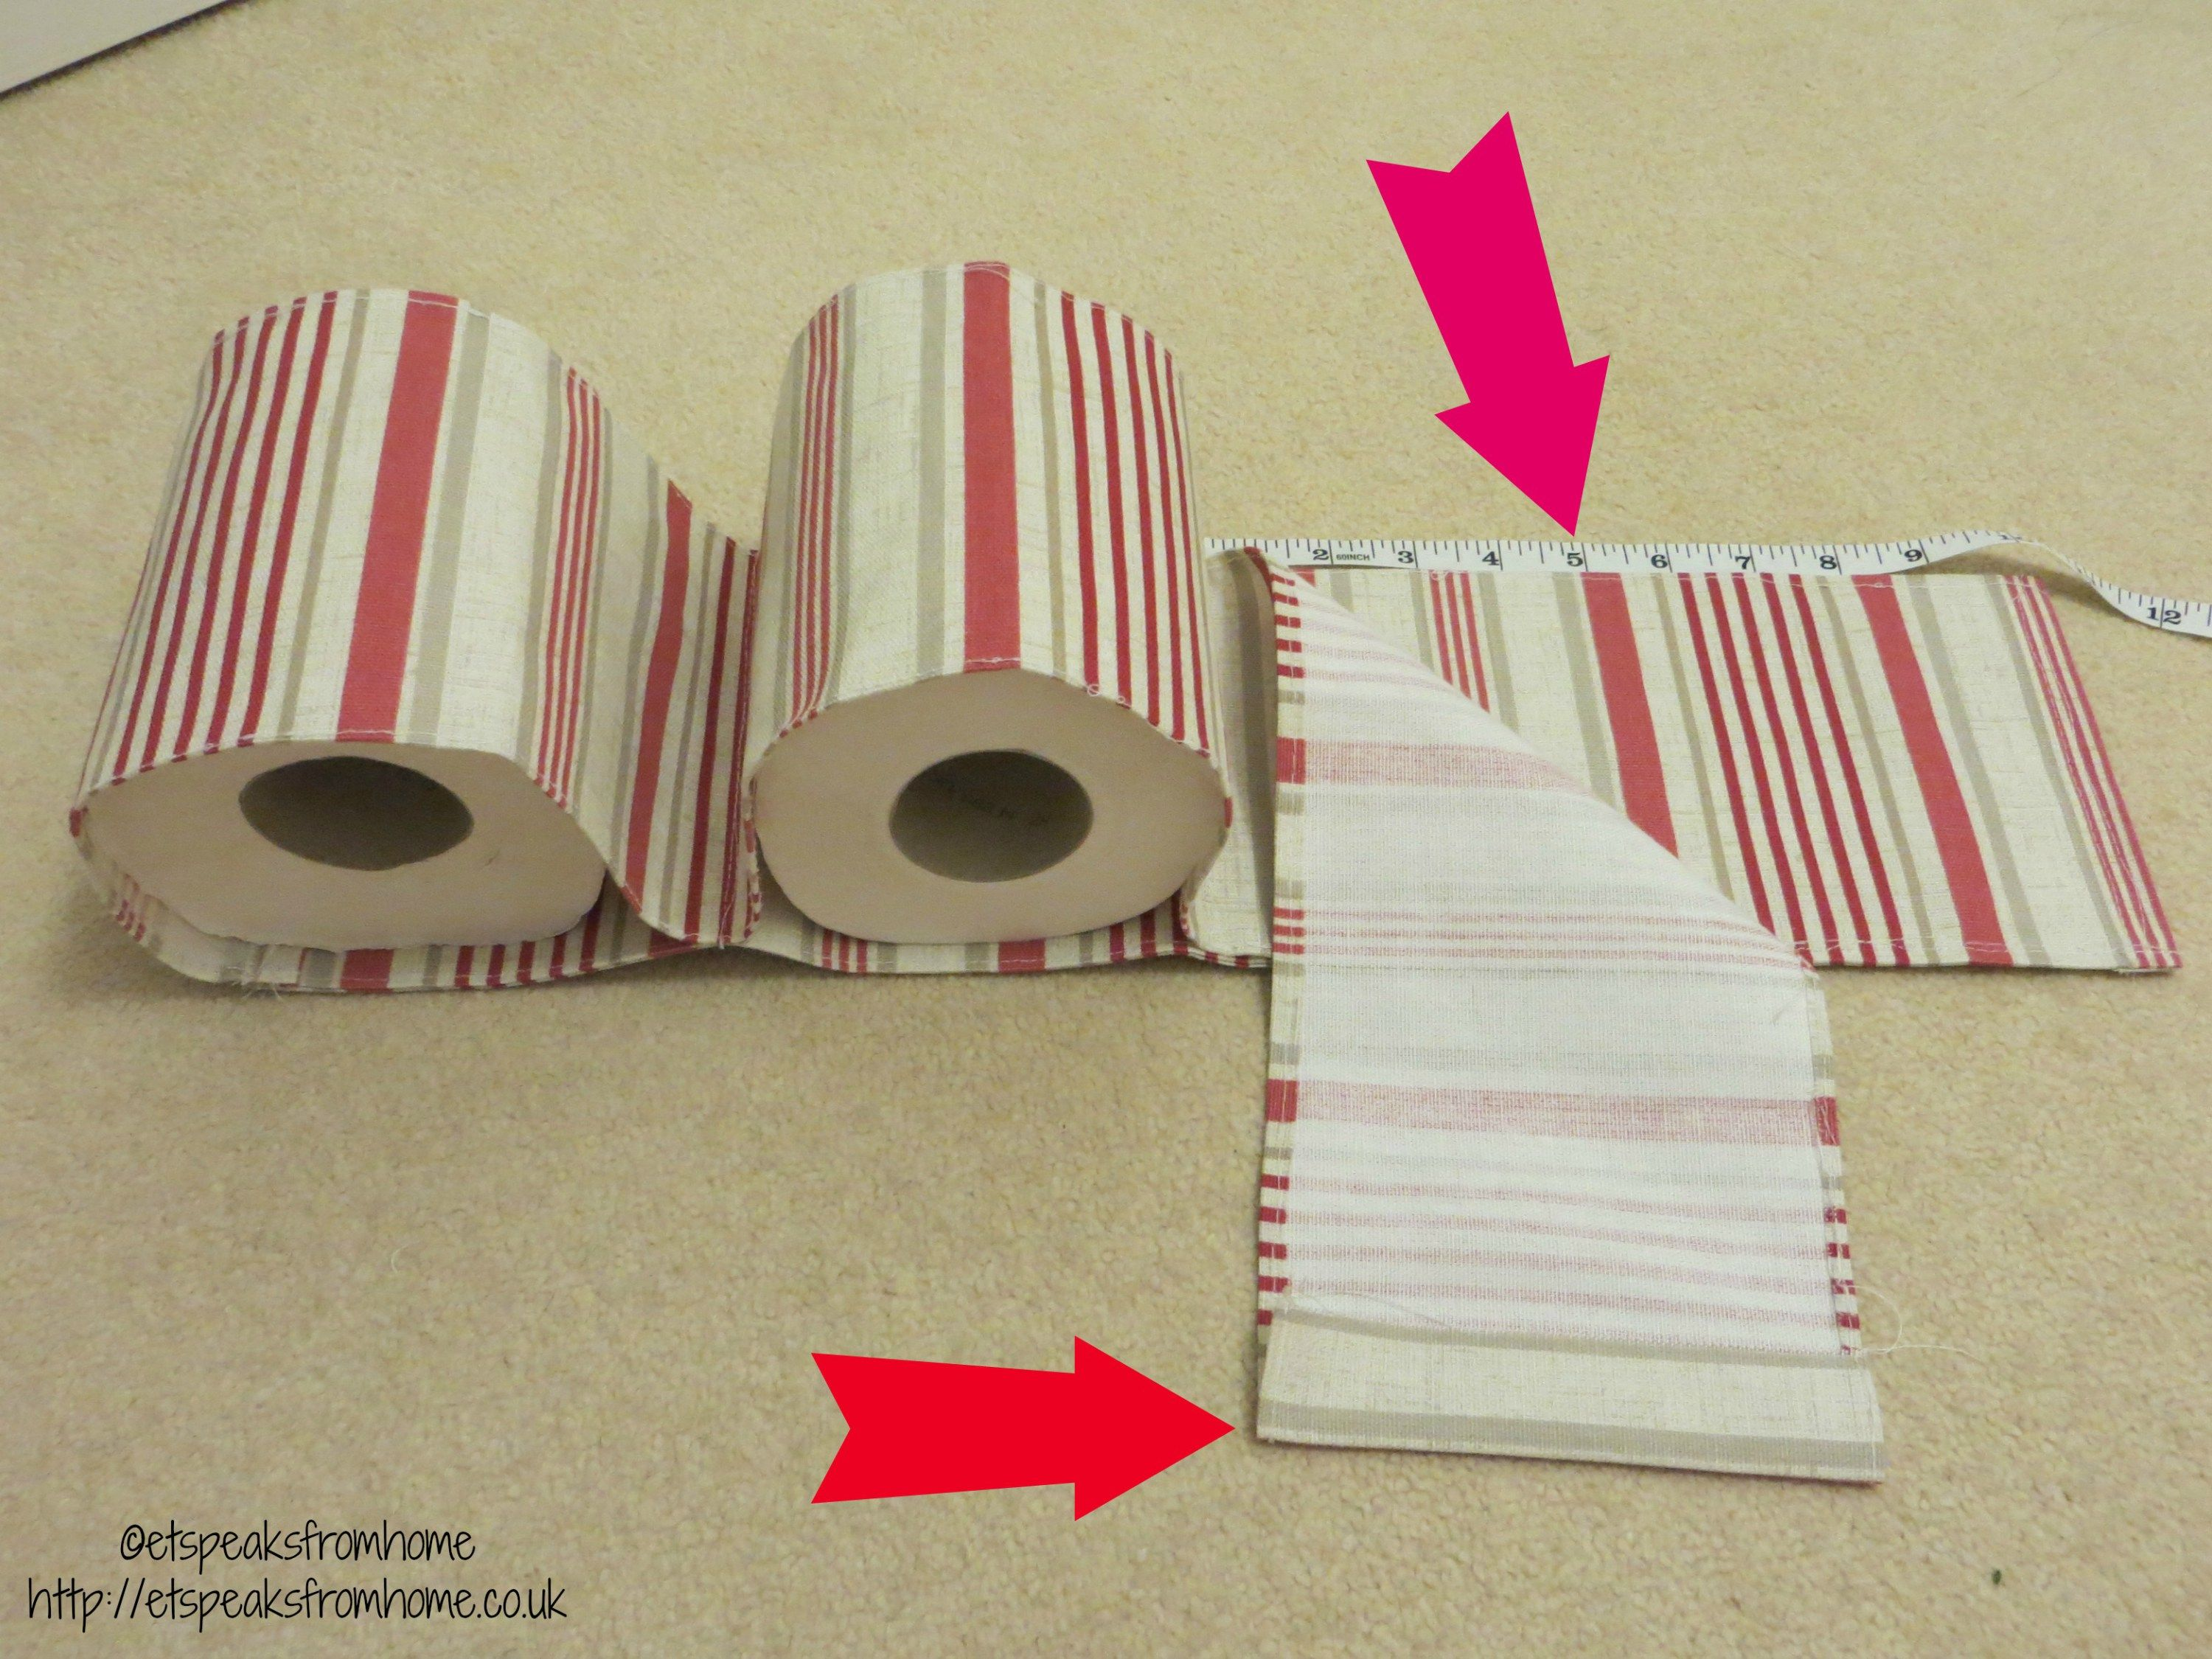 Diy Fabric Toilet Paper Holder Et Speaks From Home Diy Papier Toilettenpapier Aufbewahrung Toilettenpapierhalter Diy